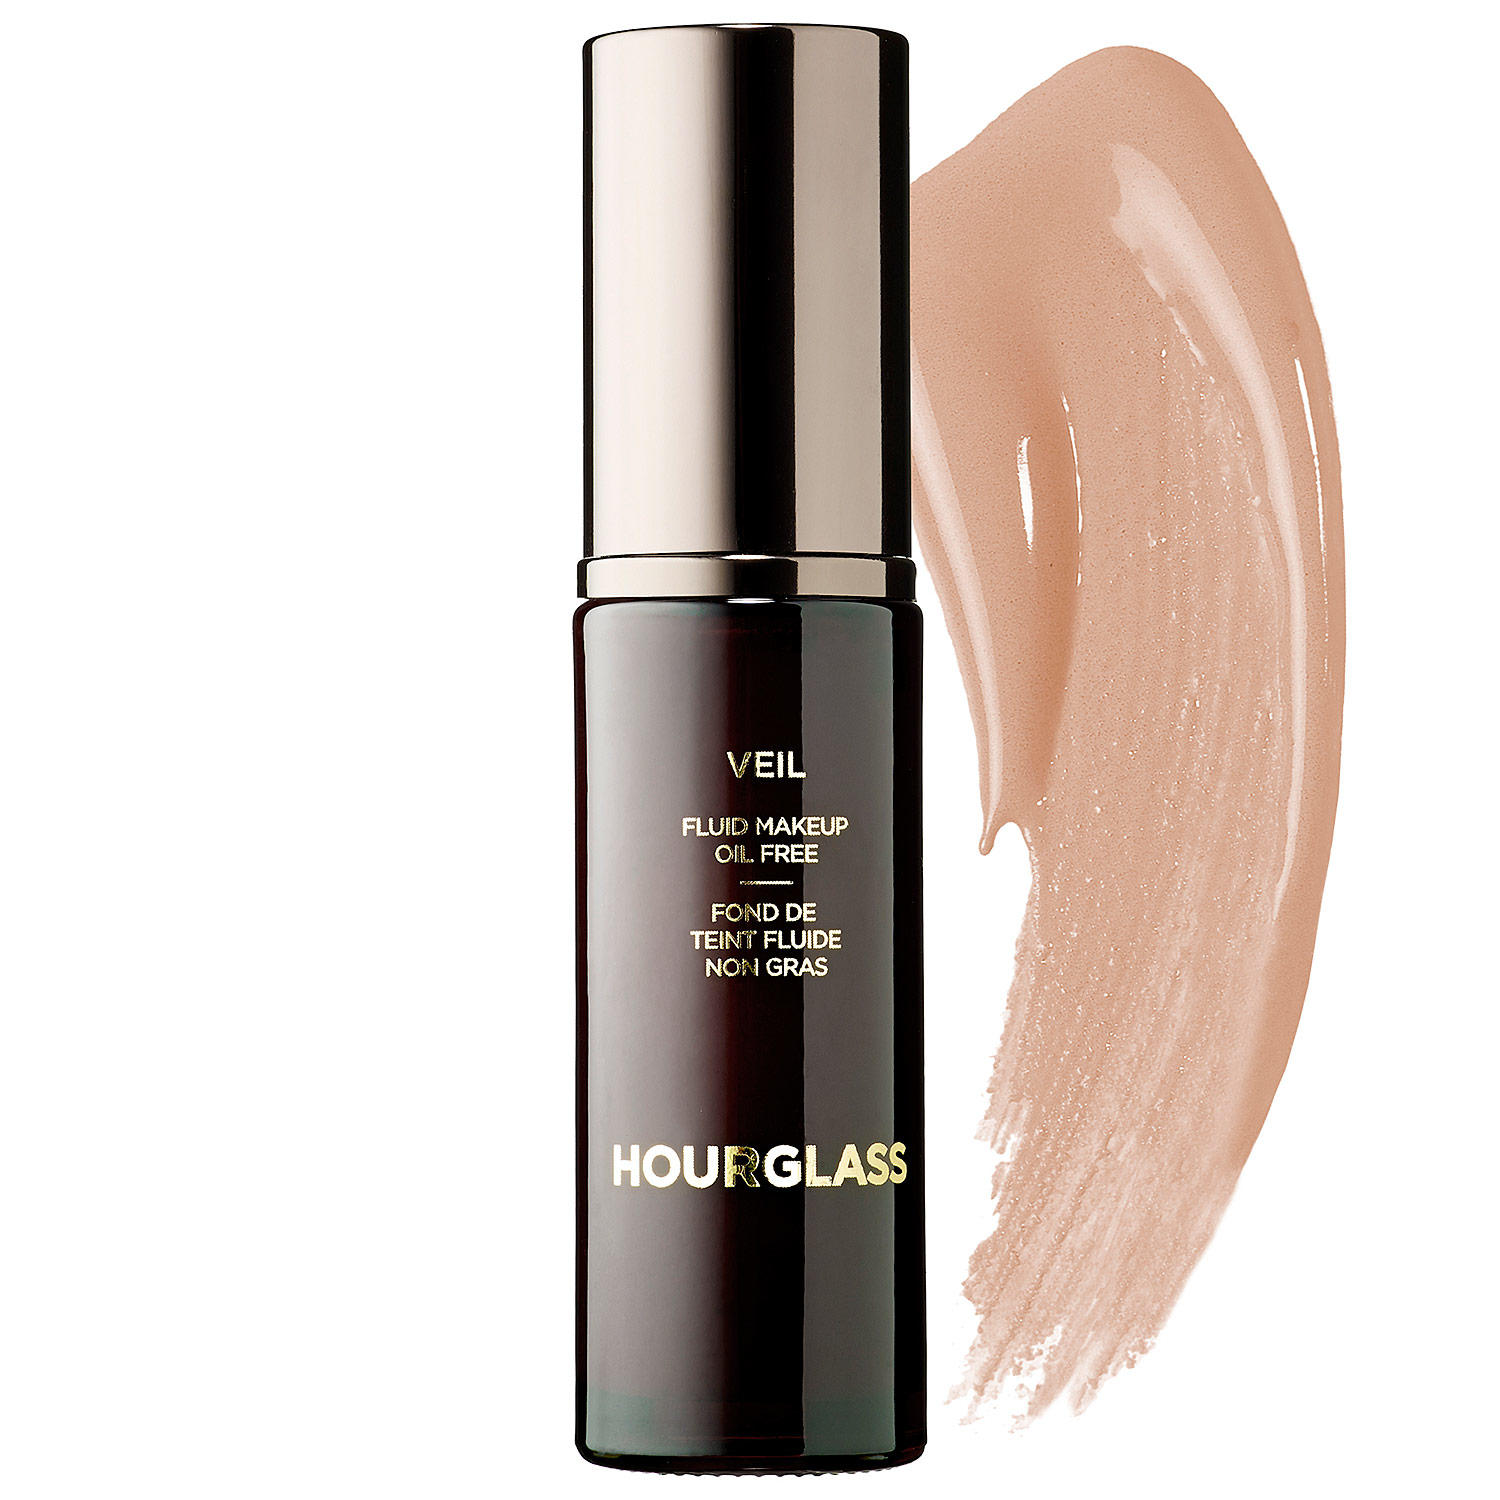 Hourglass Veil Fluid Makeup Honey  3.5